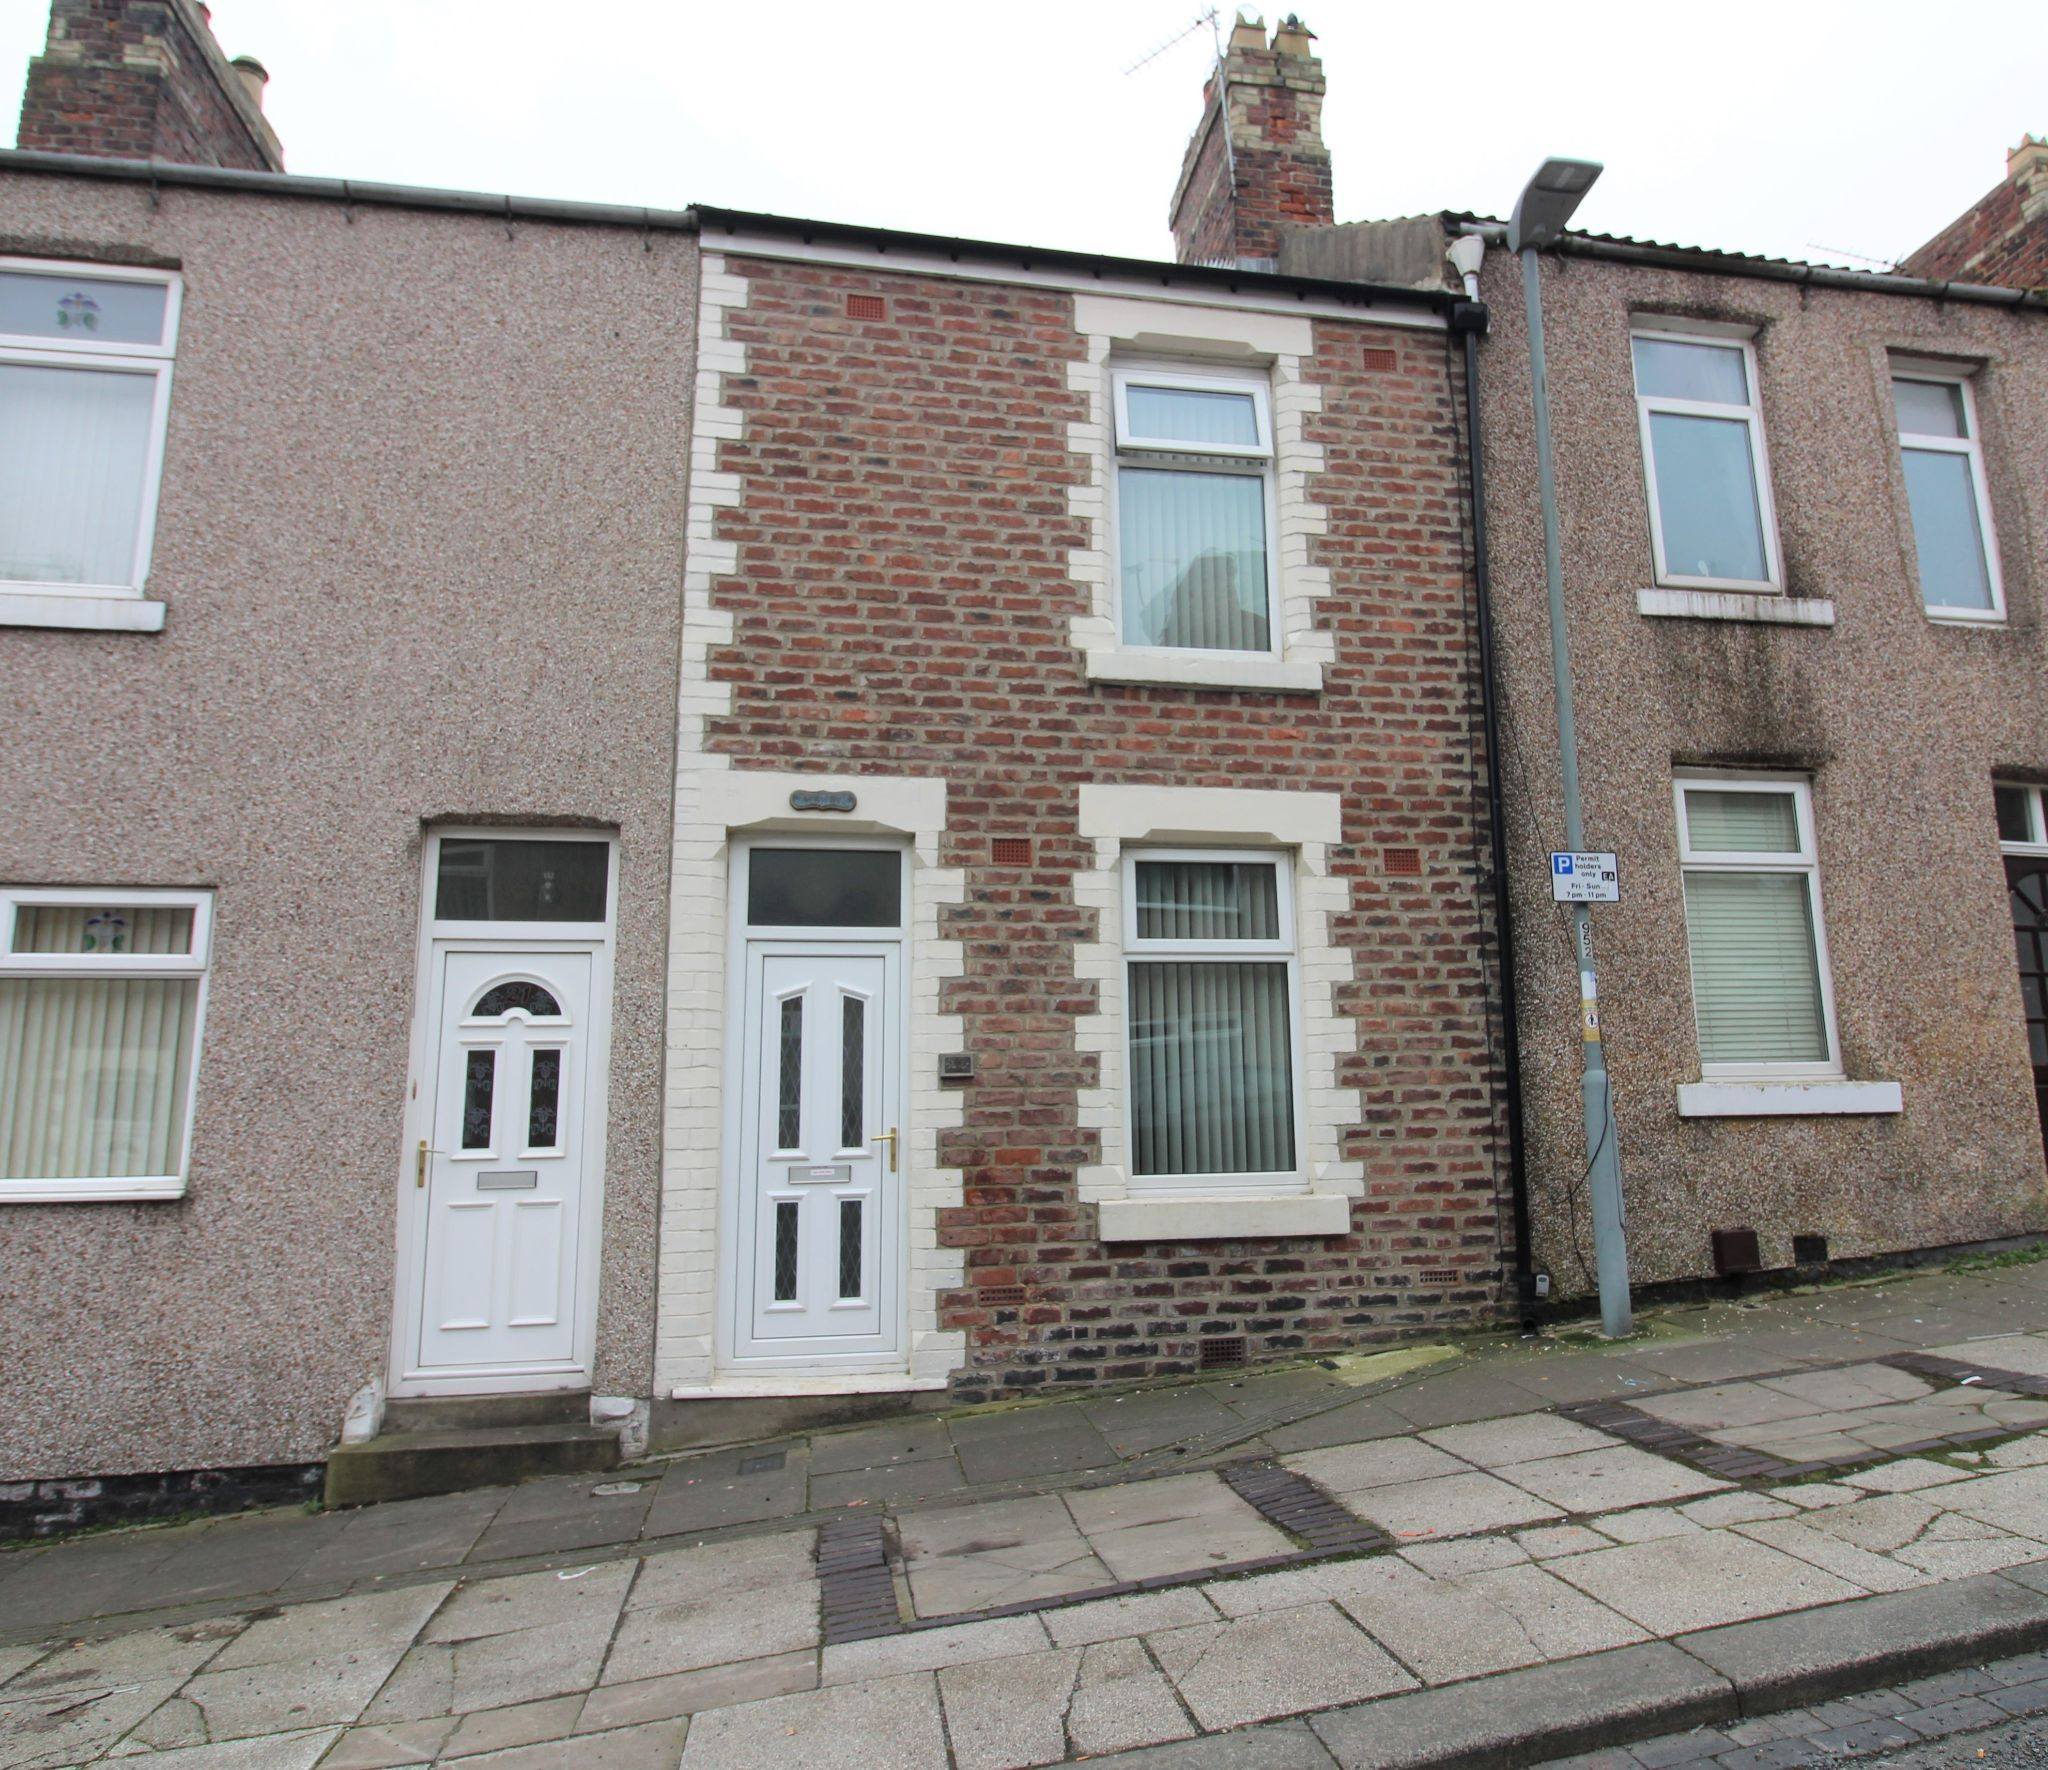 2 bedroom mid terraced house Let Agreed in Bishop Auckland - Photograph 1.